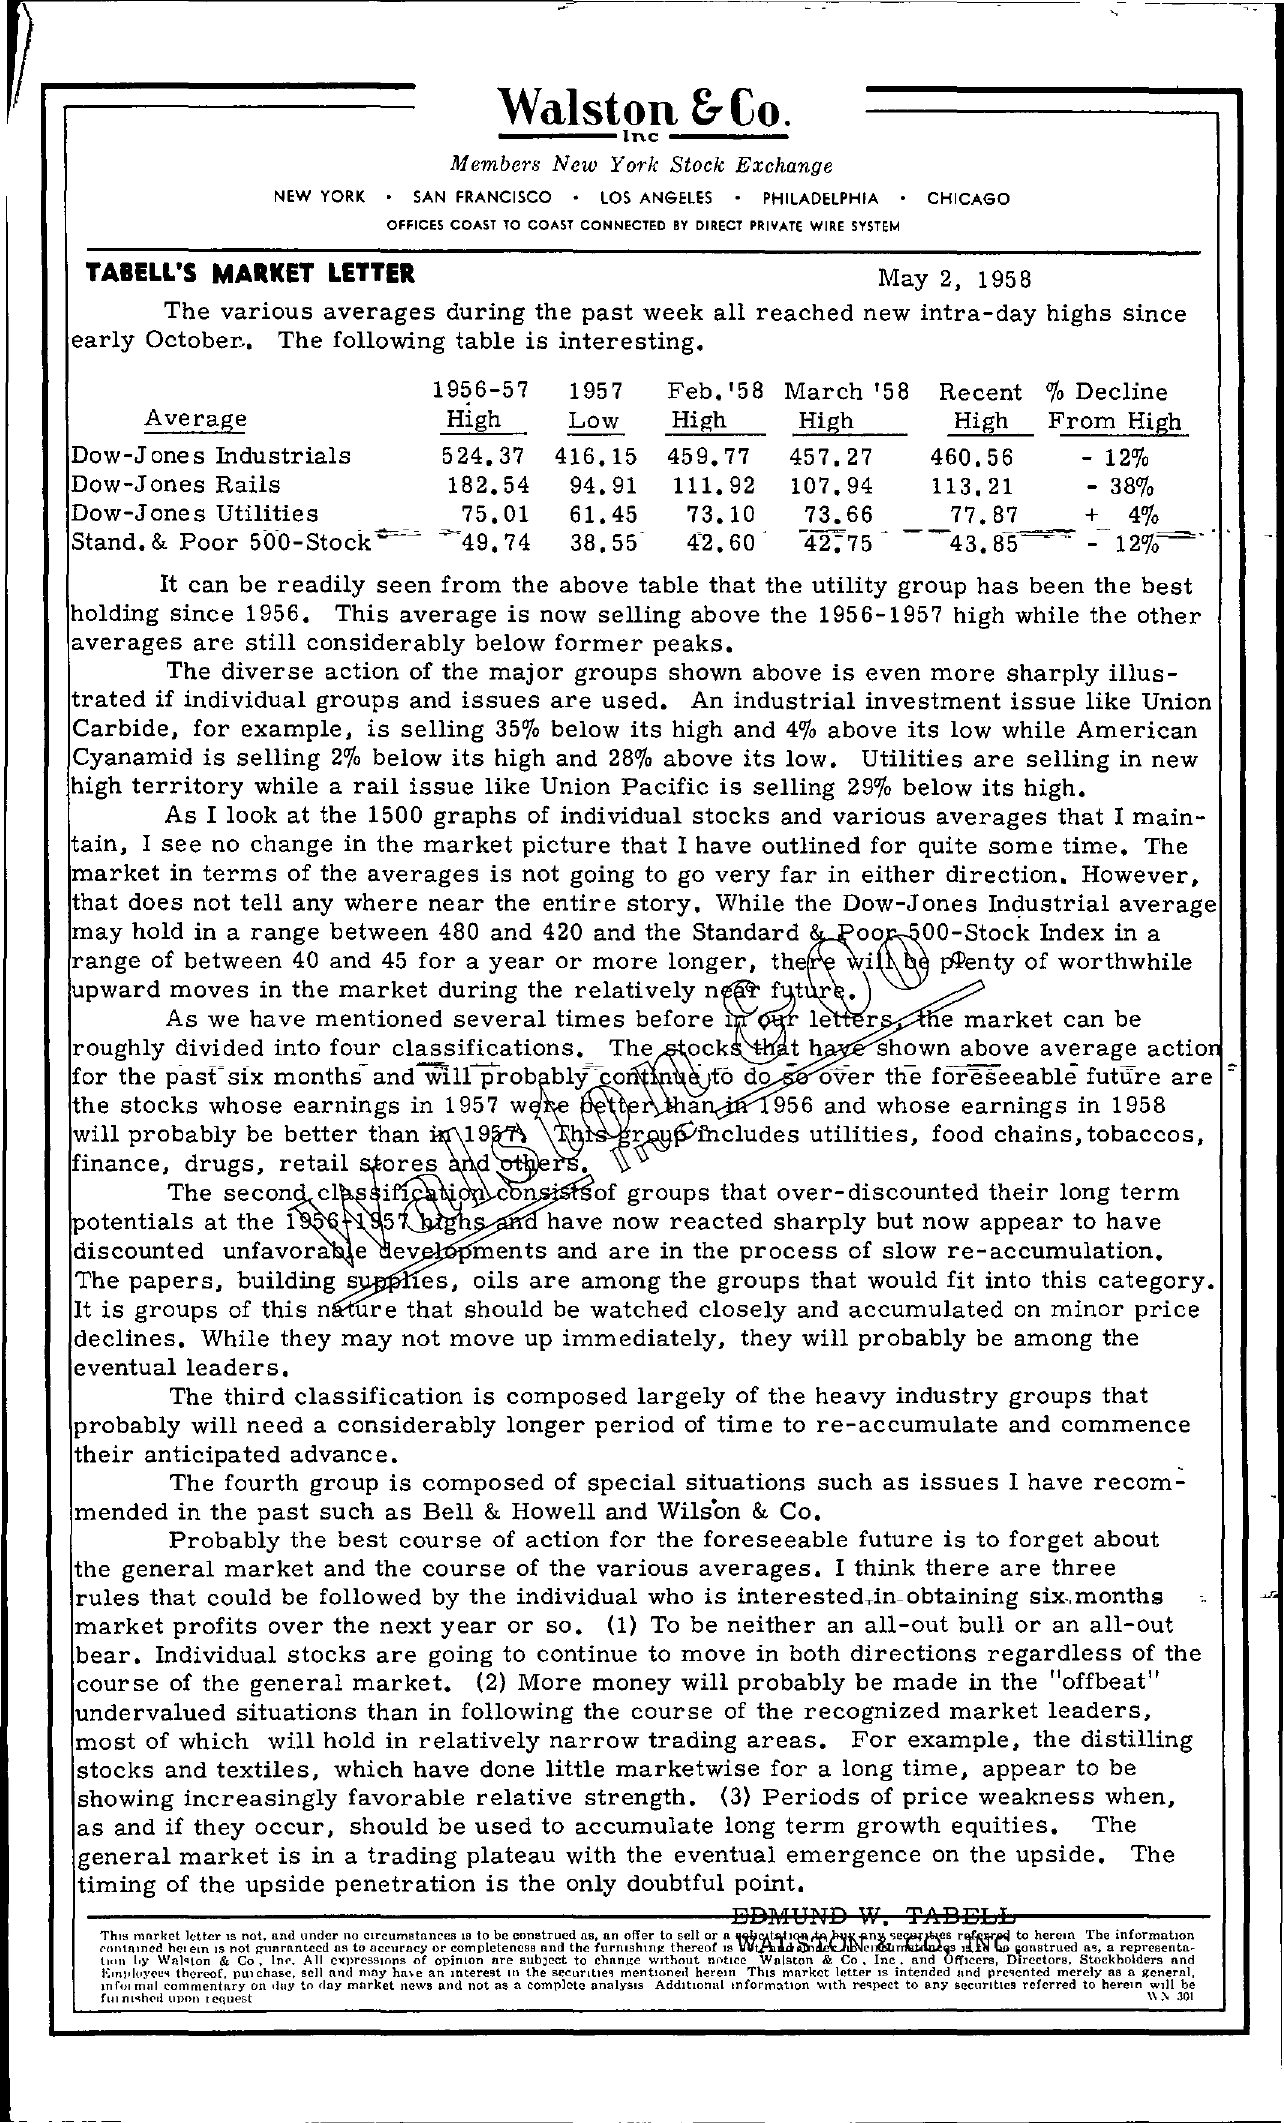 Tabell's Market Letter - May 02, 1958